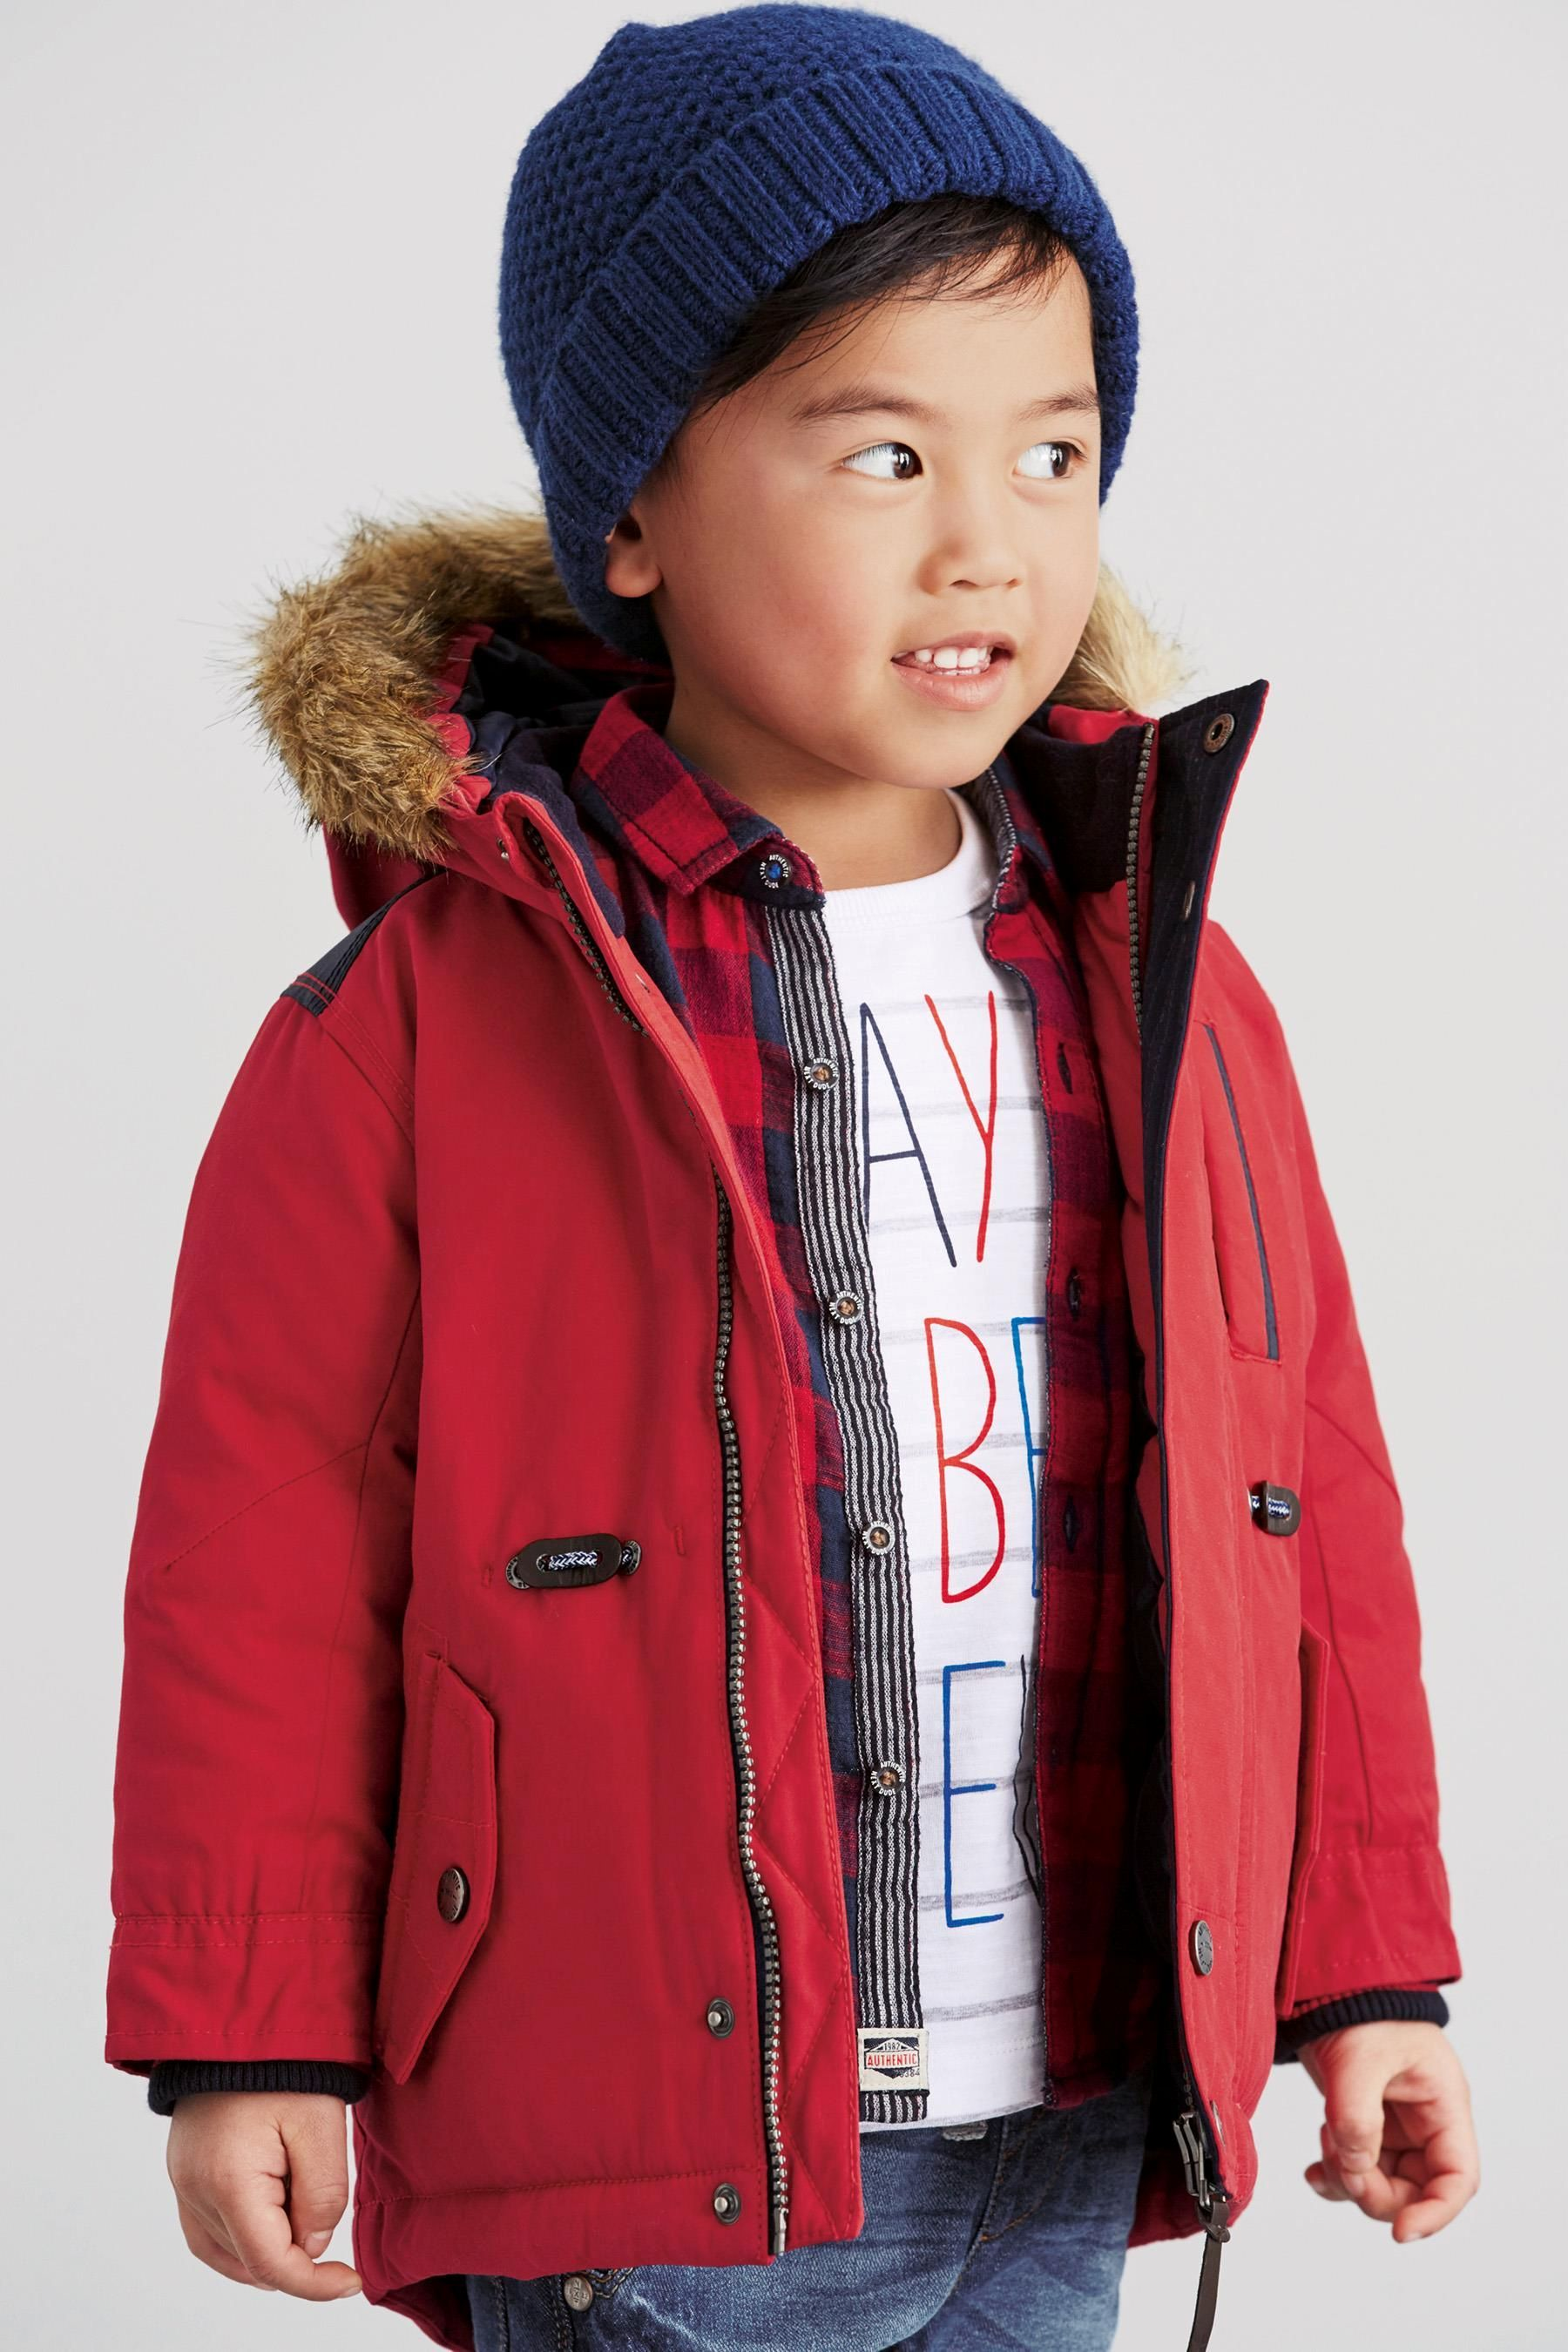 parka jacket 3mths 6yrs from the next uk online shop #2: 798a7cd2fa58b8398a7d1b3e d